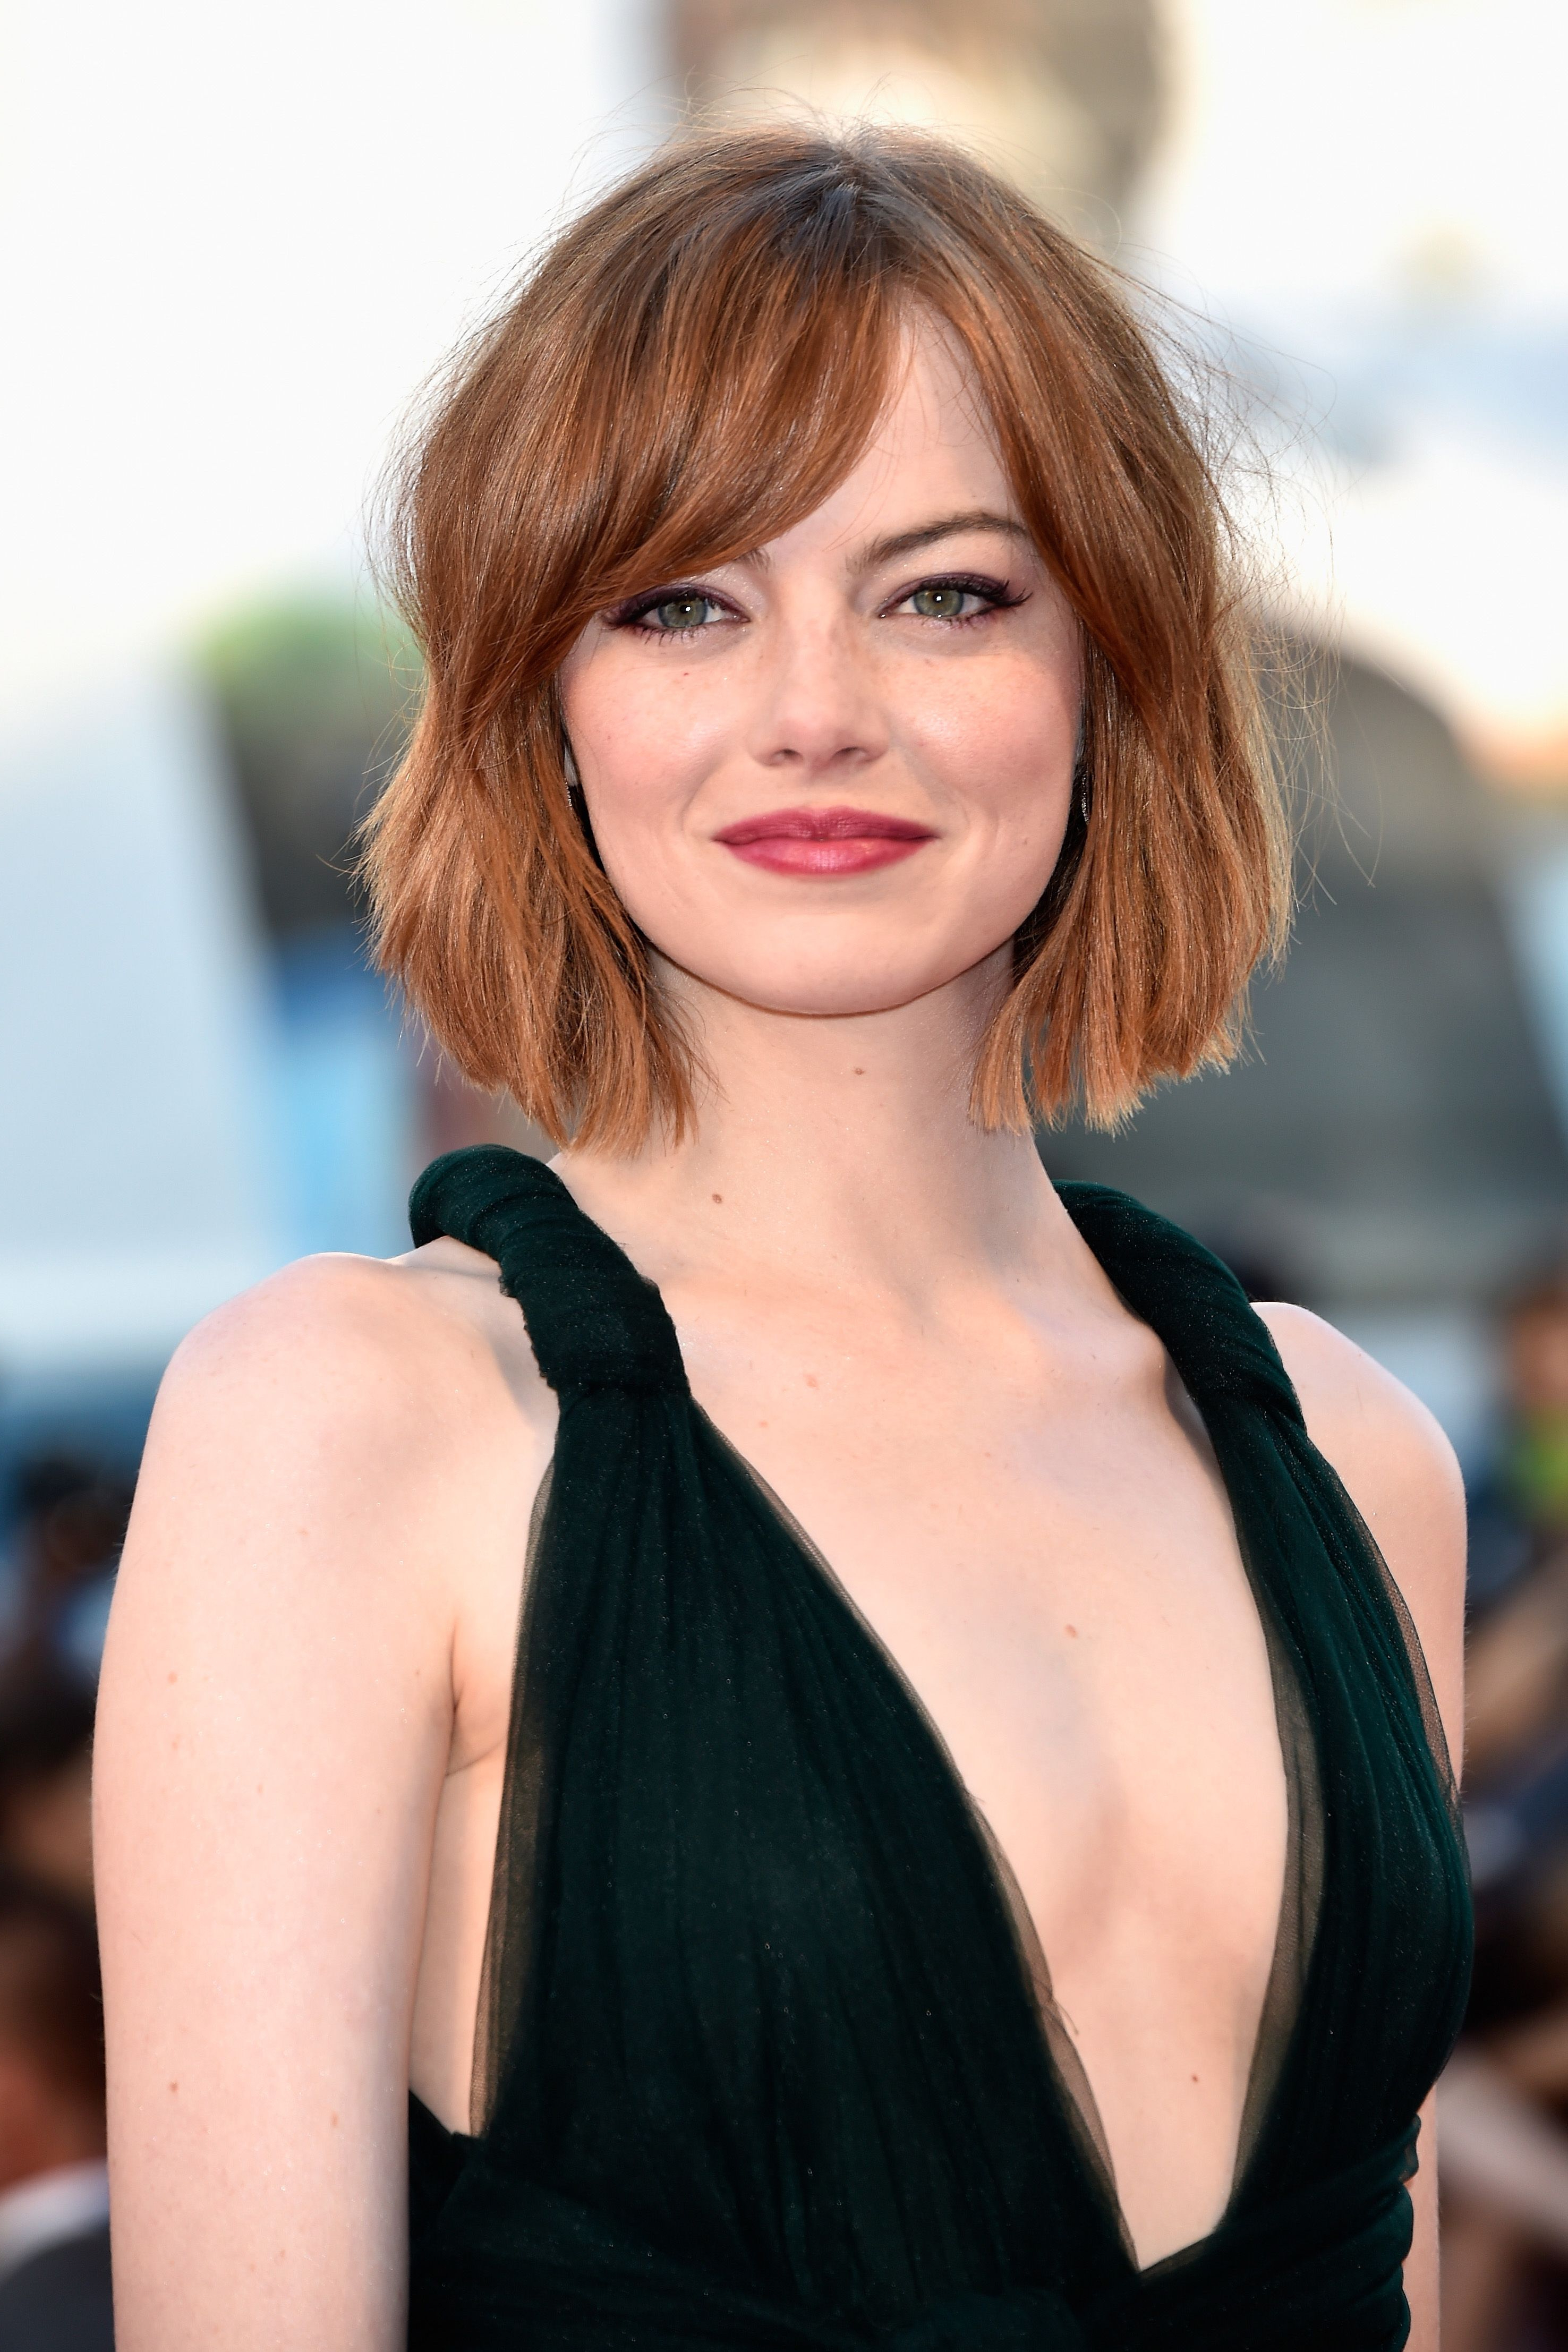 45 Hairstyles For Round Faces – Best Haircuts For Round Face Shape Regarding Current Medium Hairstyles With Bangs For Round Faces (View 5 of 20)